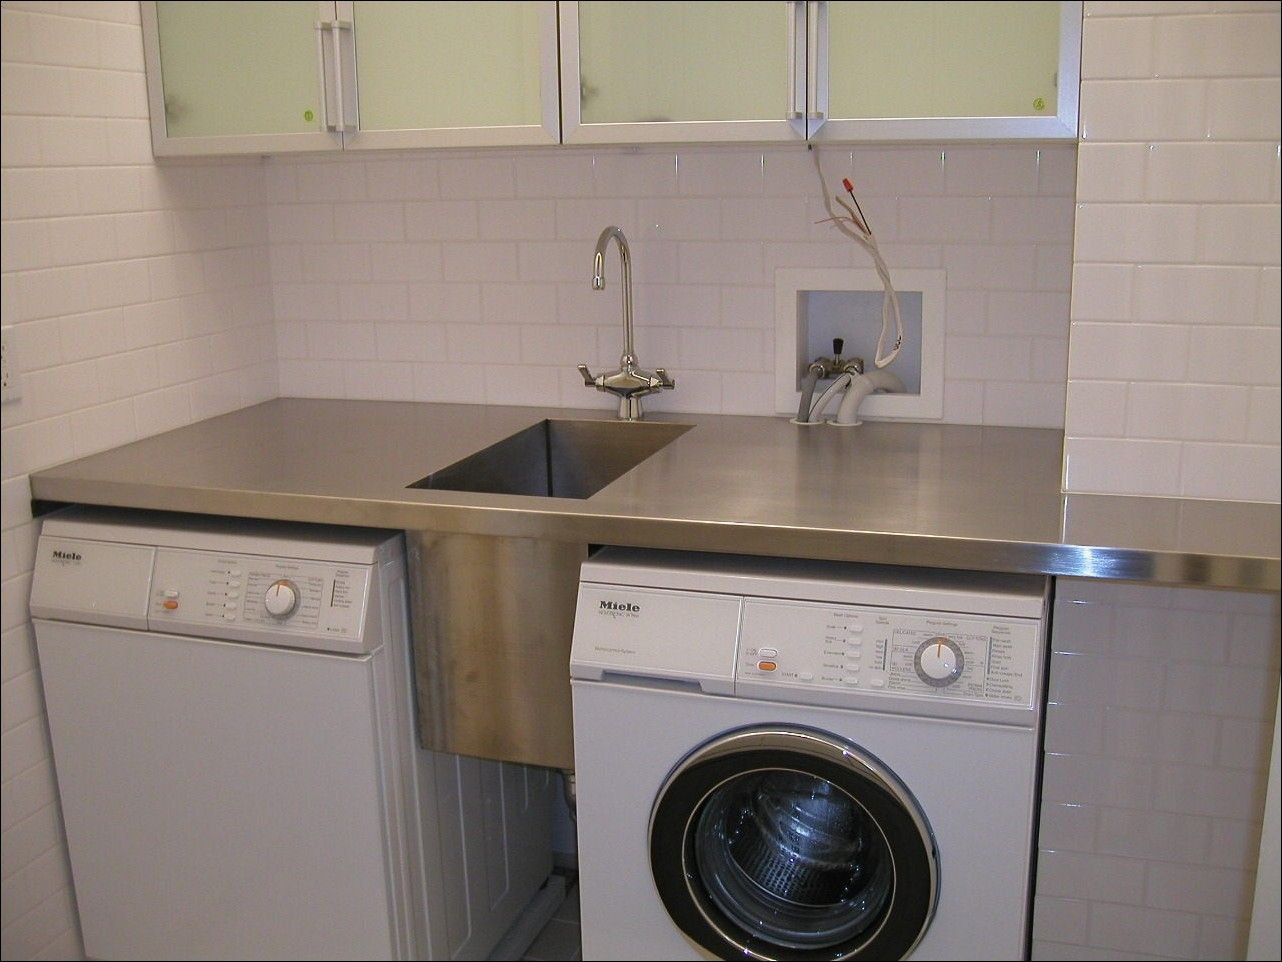 your interior wash needs laundry garage room shop fits small steel utility cabinet that stainless sink bar tub